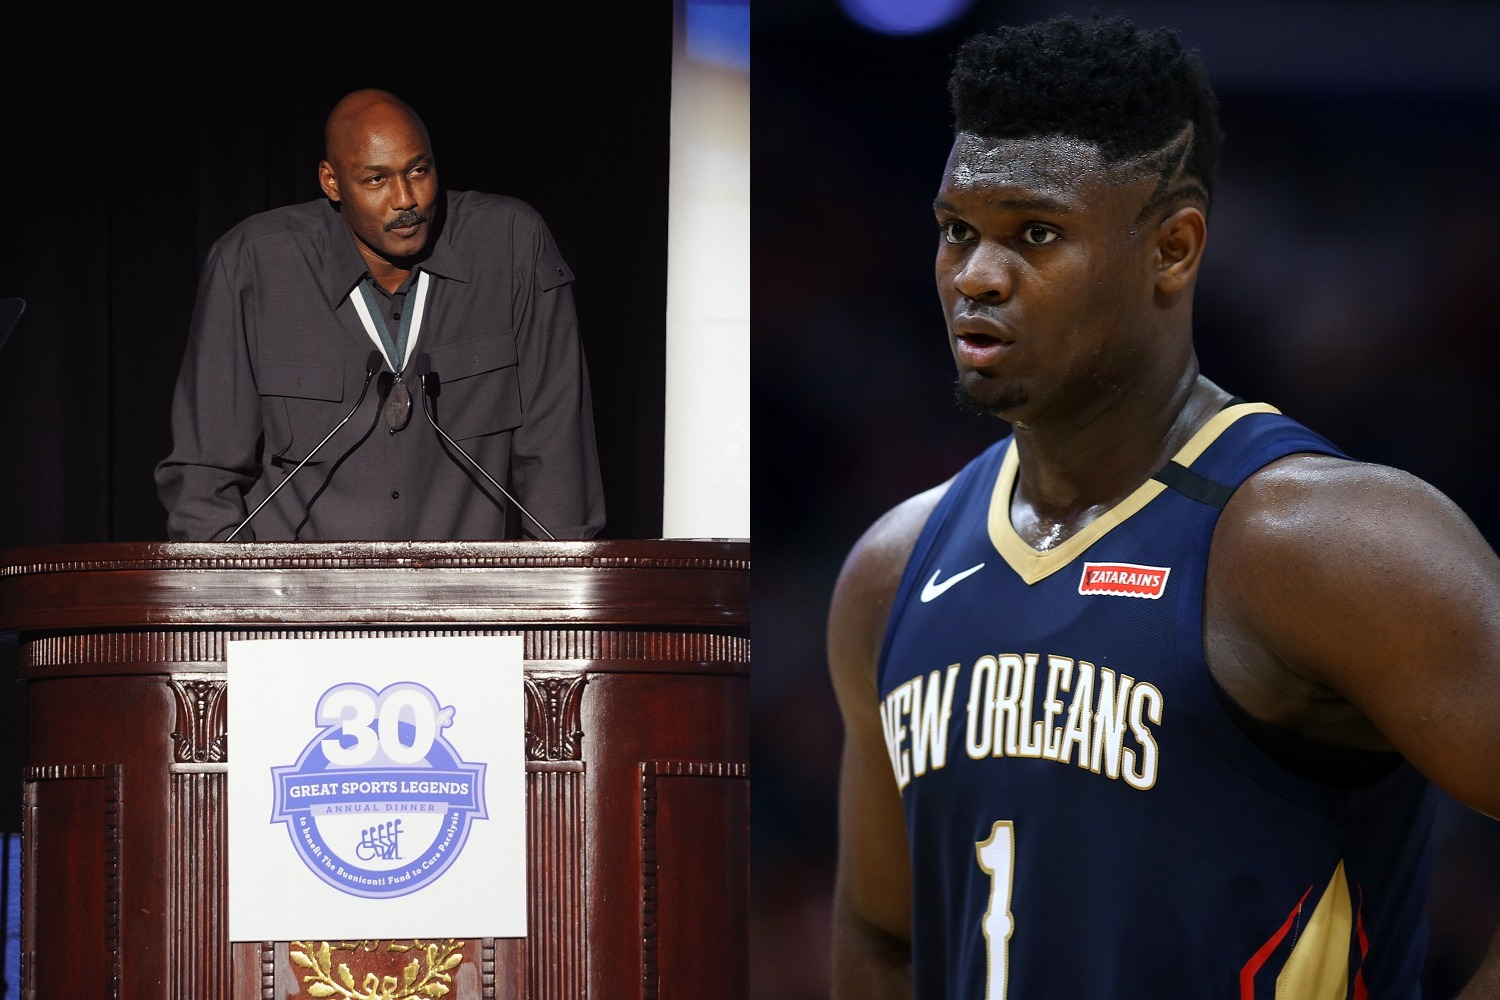 Karl Malone Surprisingly Rips Zion Williamson: 'Your Ass Shouldn't Get Tired'